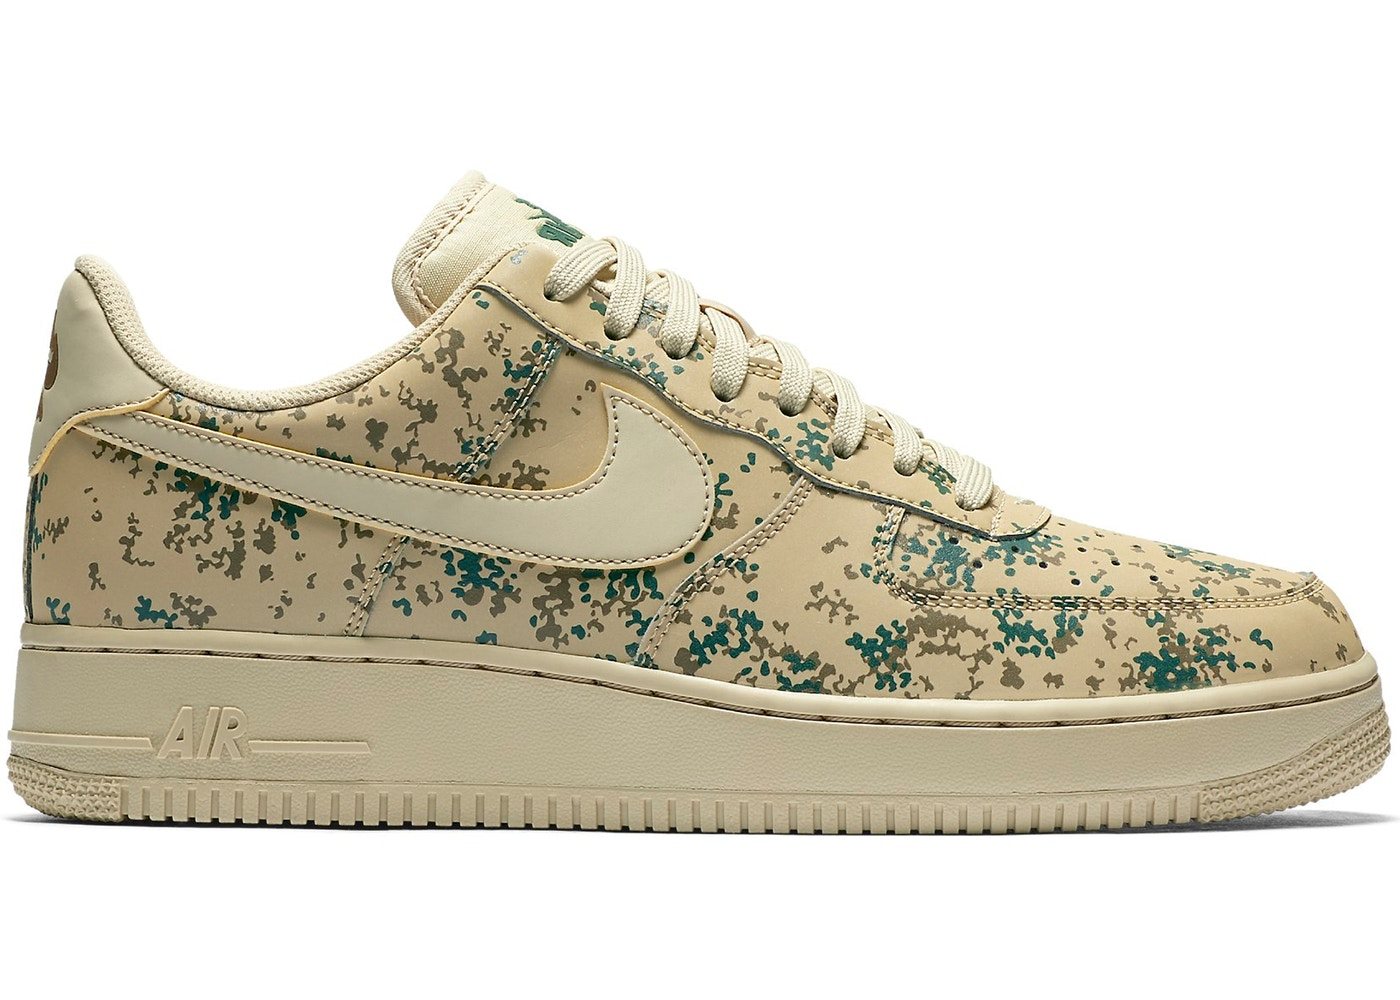 air force 1 desert